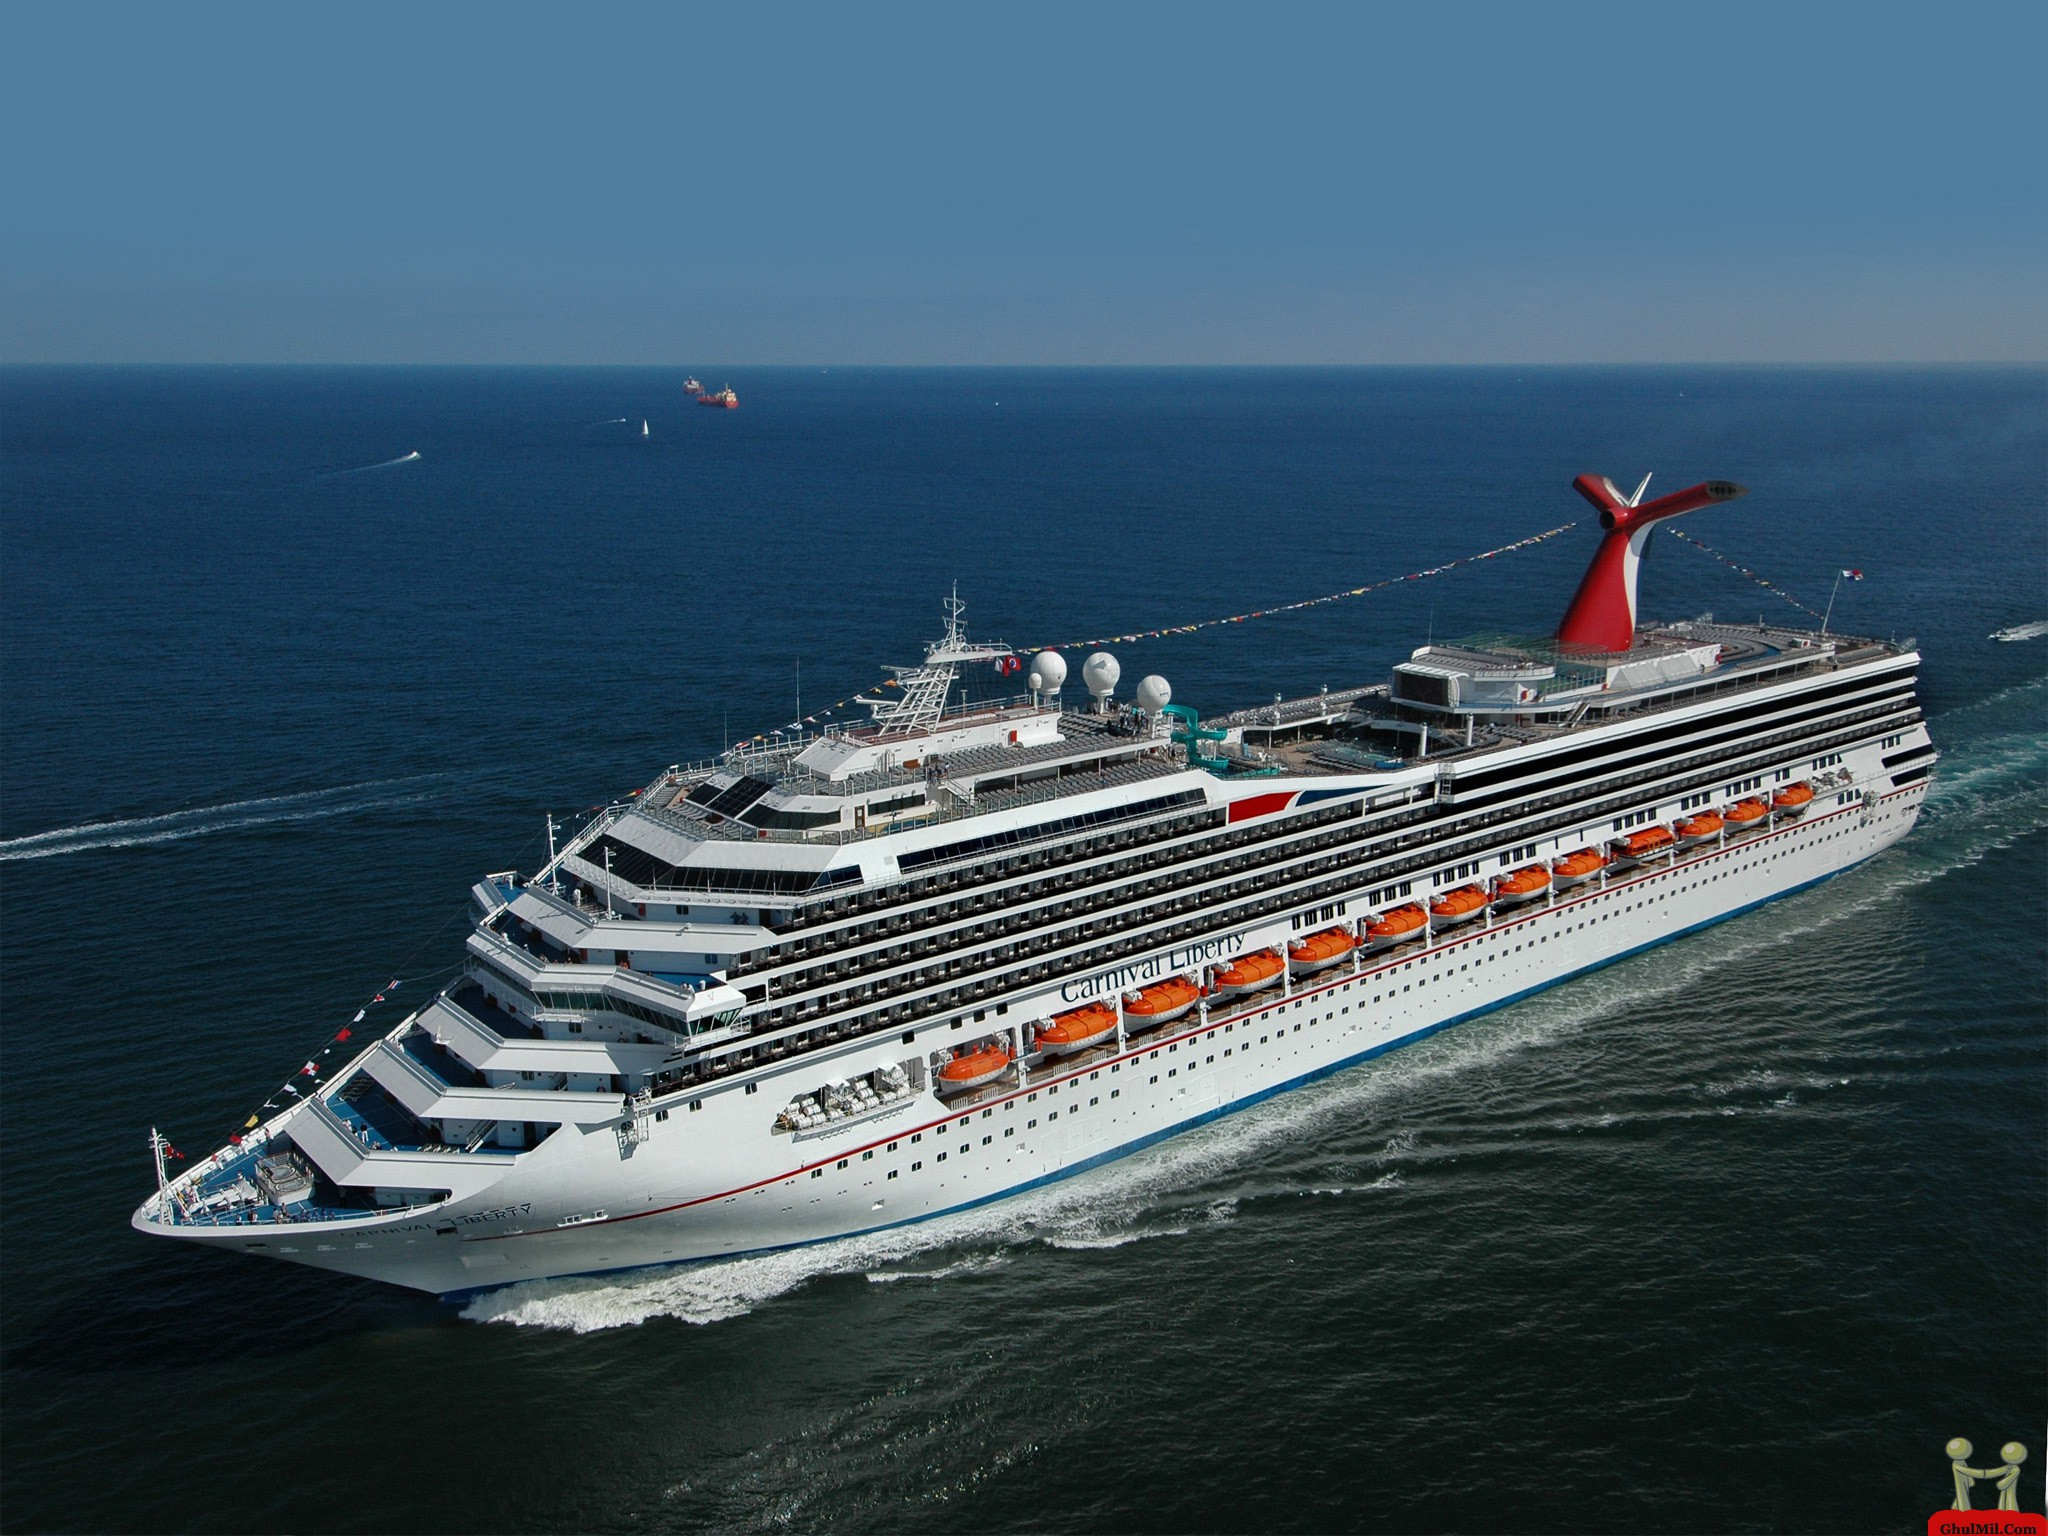 Carnival Liberty Cruise Ship Beautiful HD Wallpapers E Entertainment 2048x1536